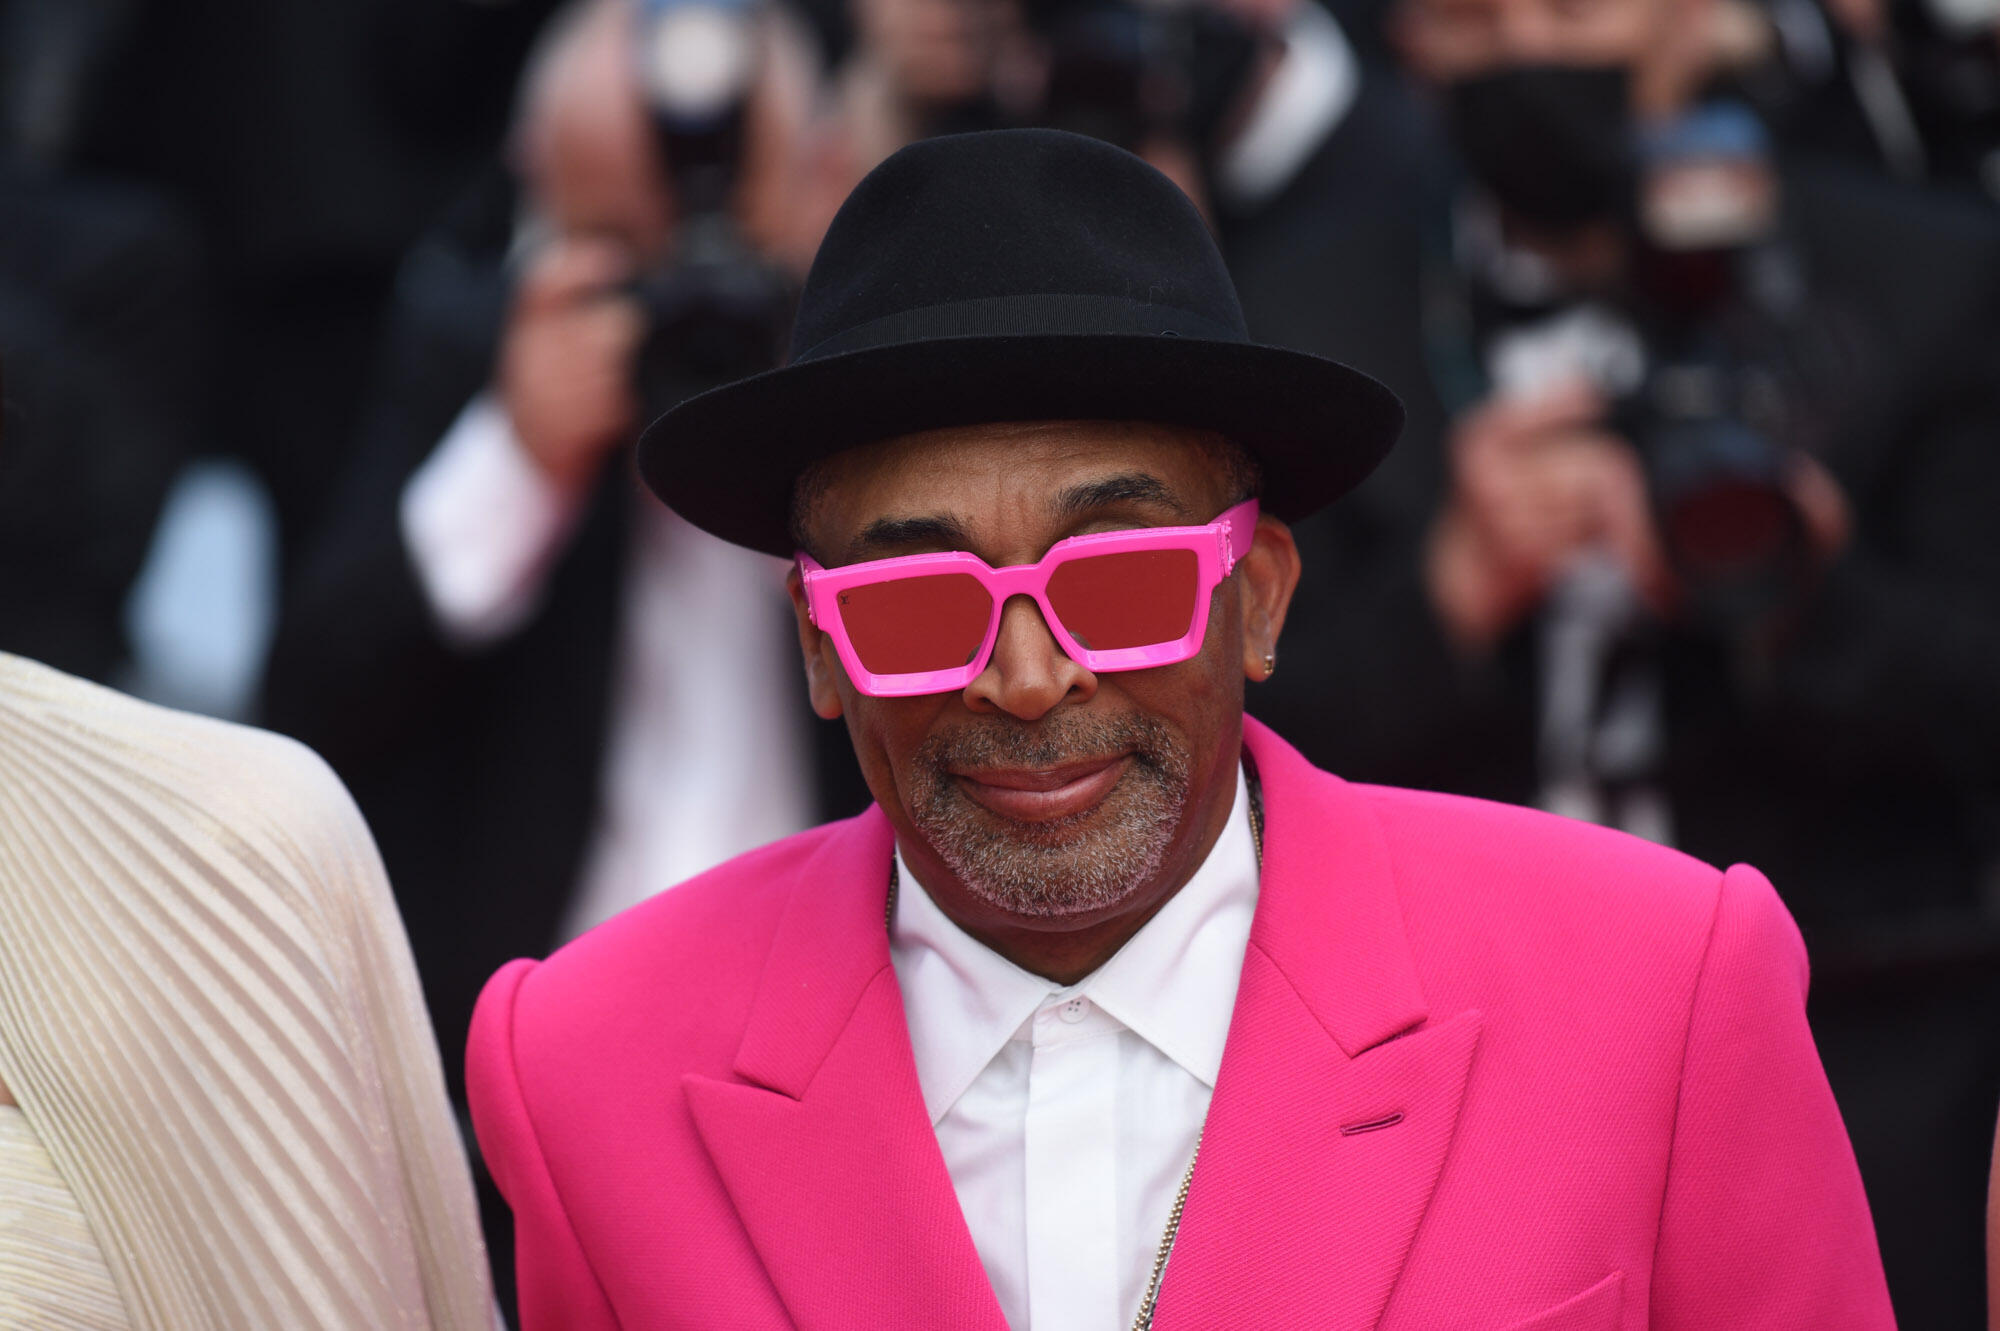 US director Spike Lee was the first Black person to head a Cannes Jury.